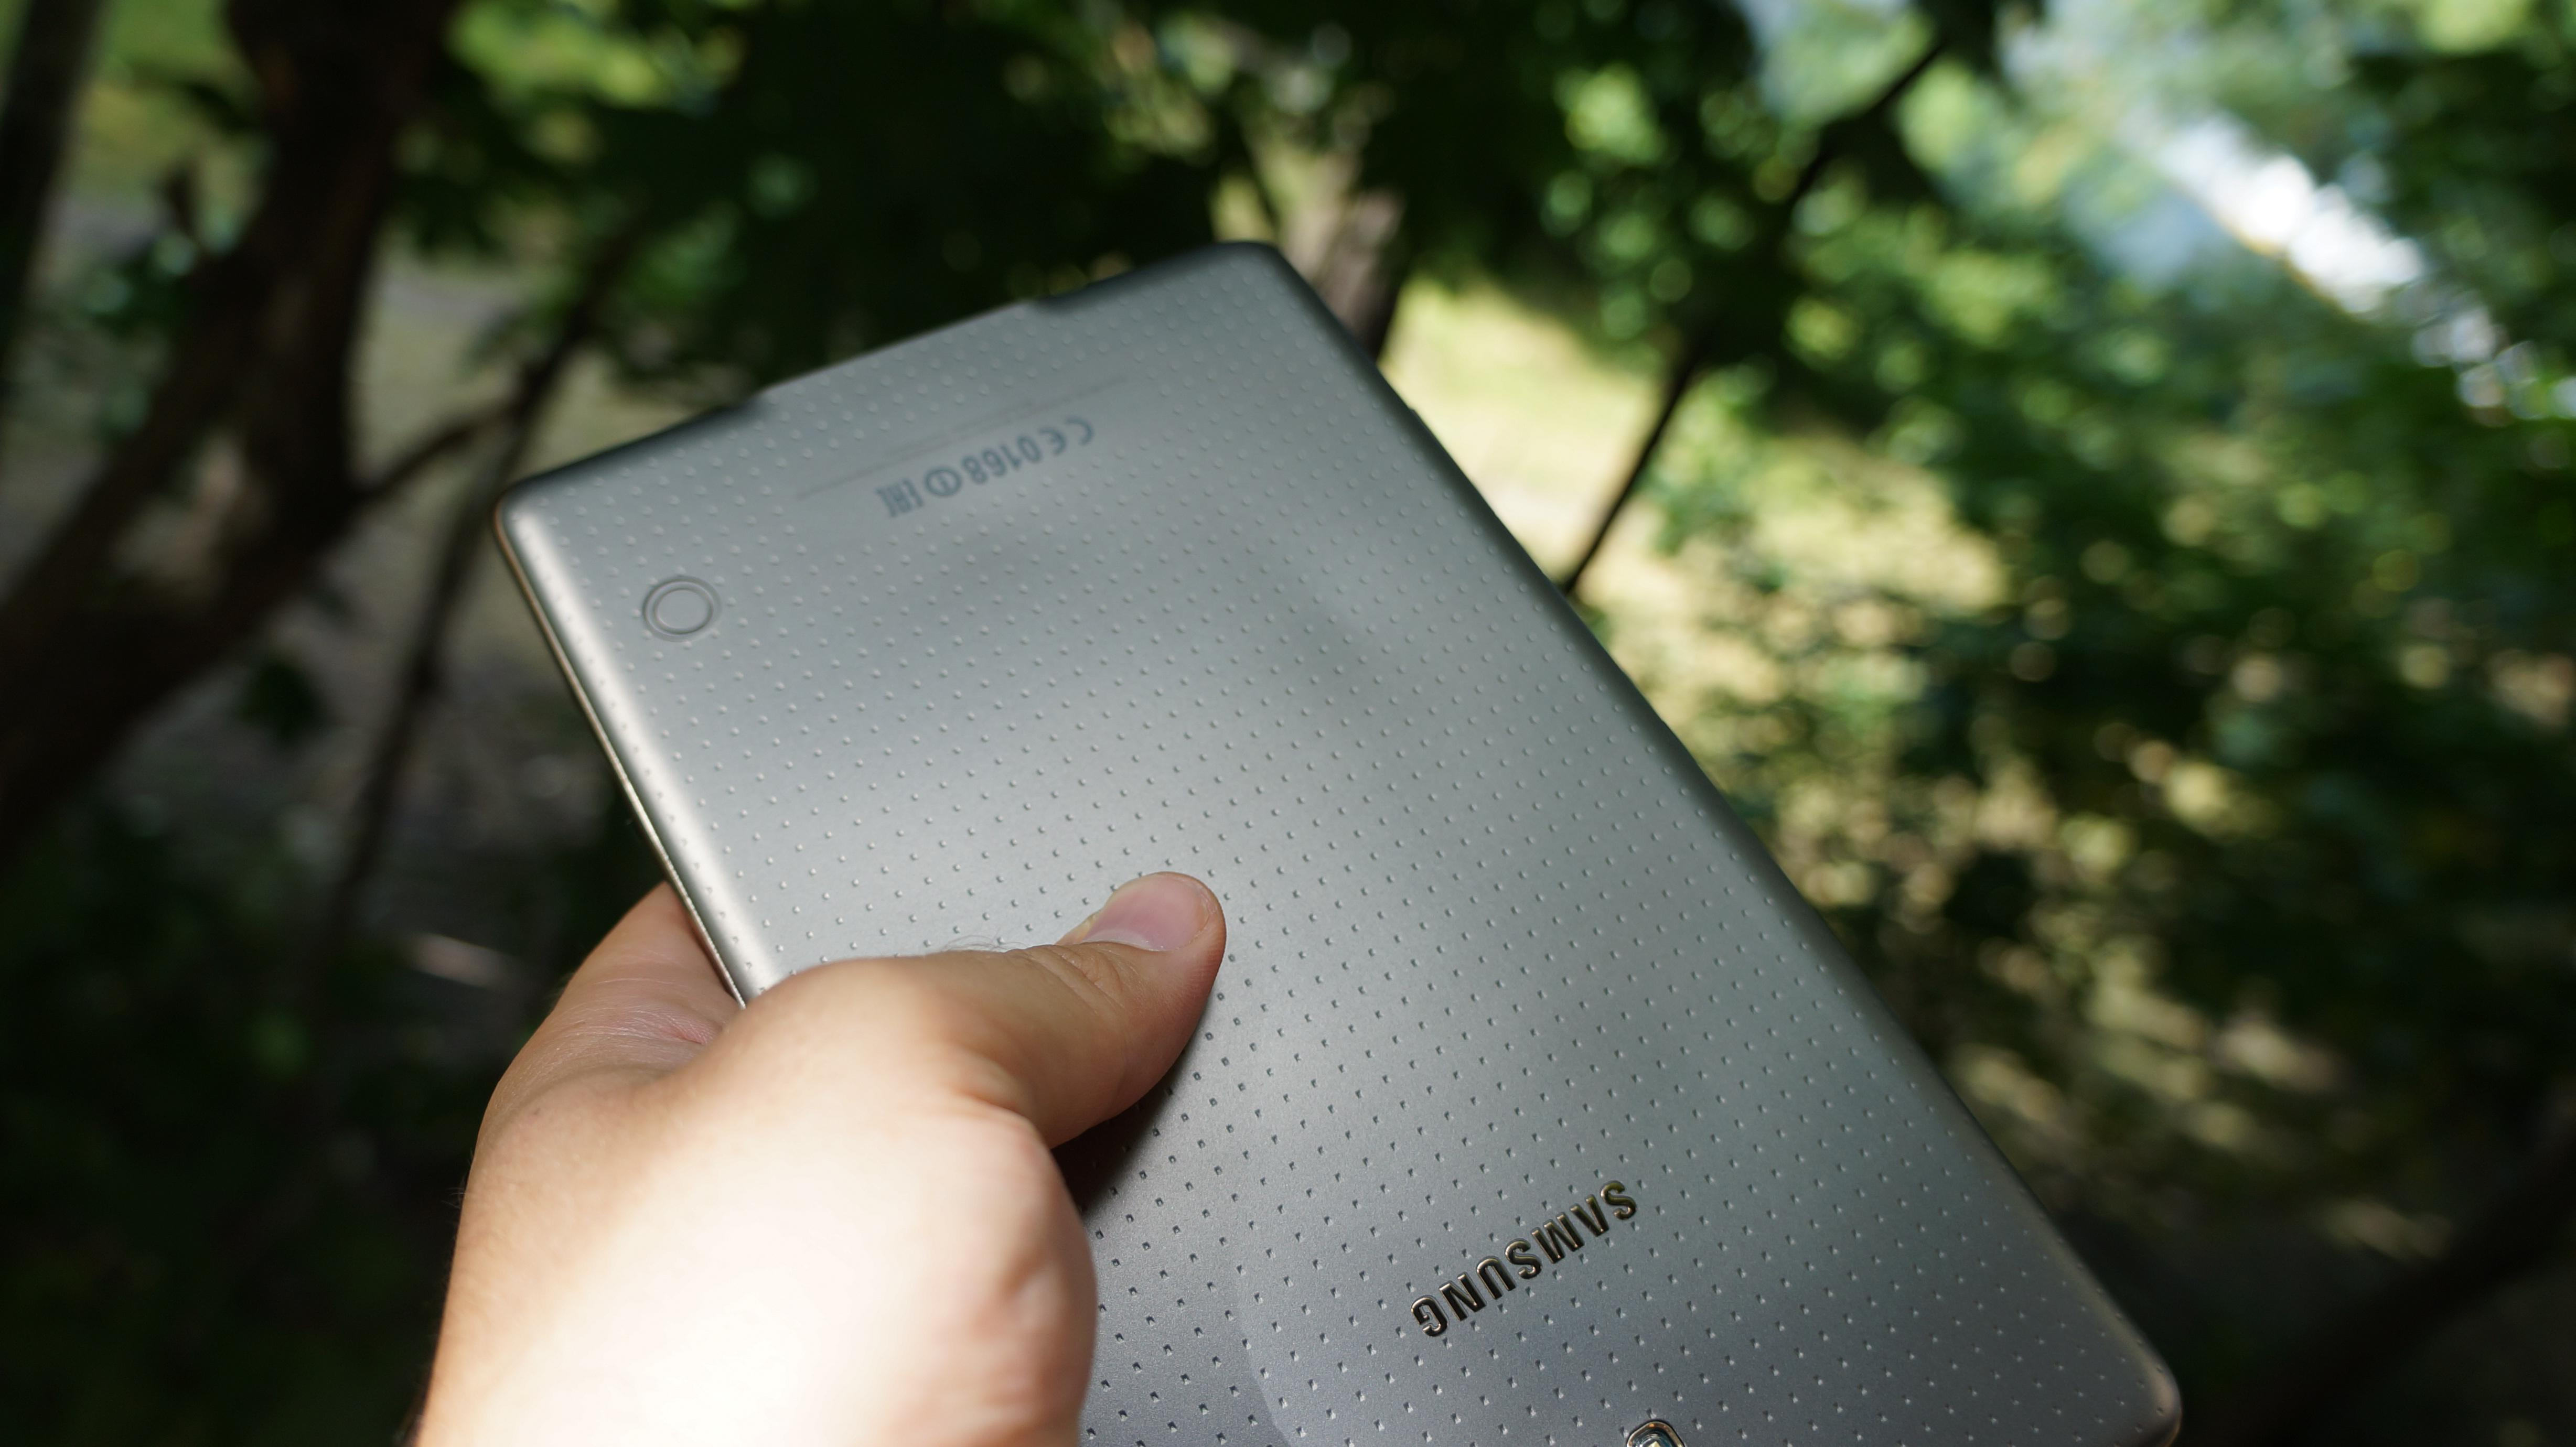 samsung galaxy tab s experiencing overheating issues lead distorted backs